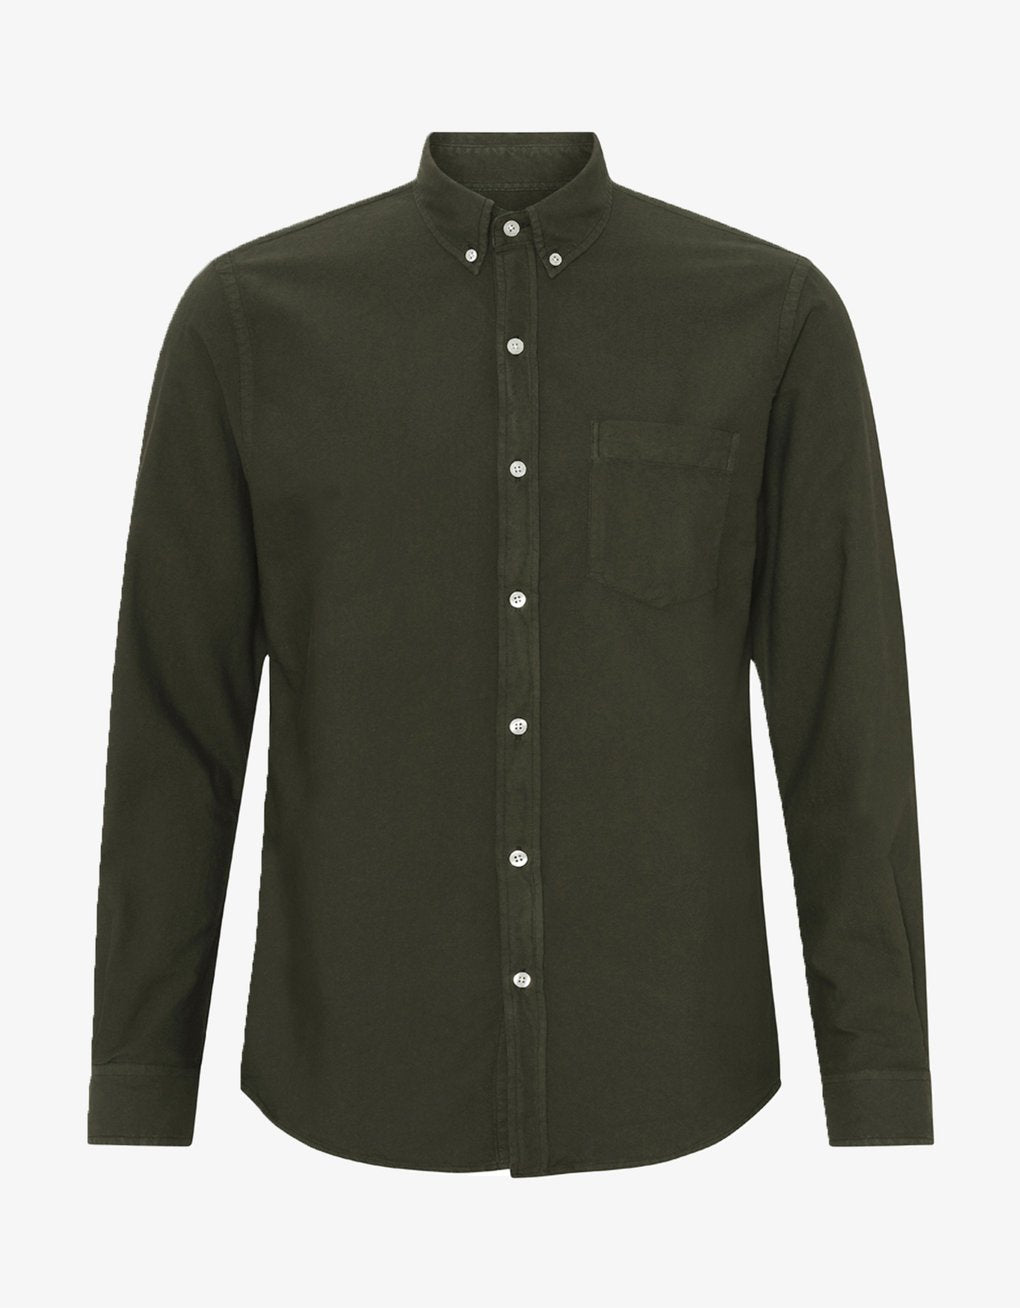 Colorful Standard Button Down Shirt - Hunter Green